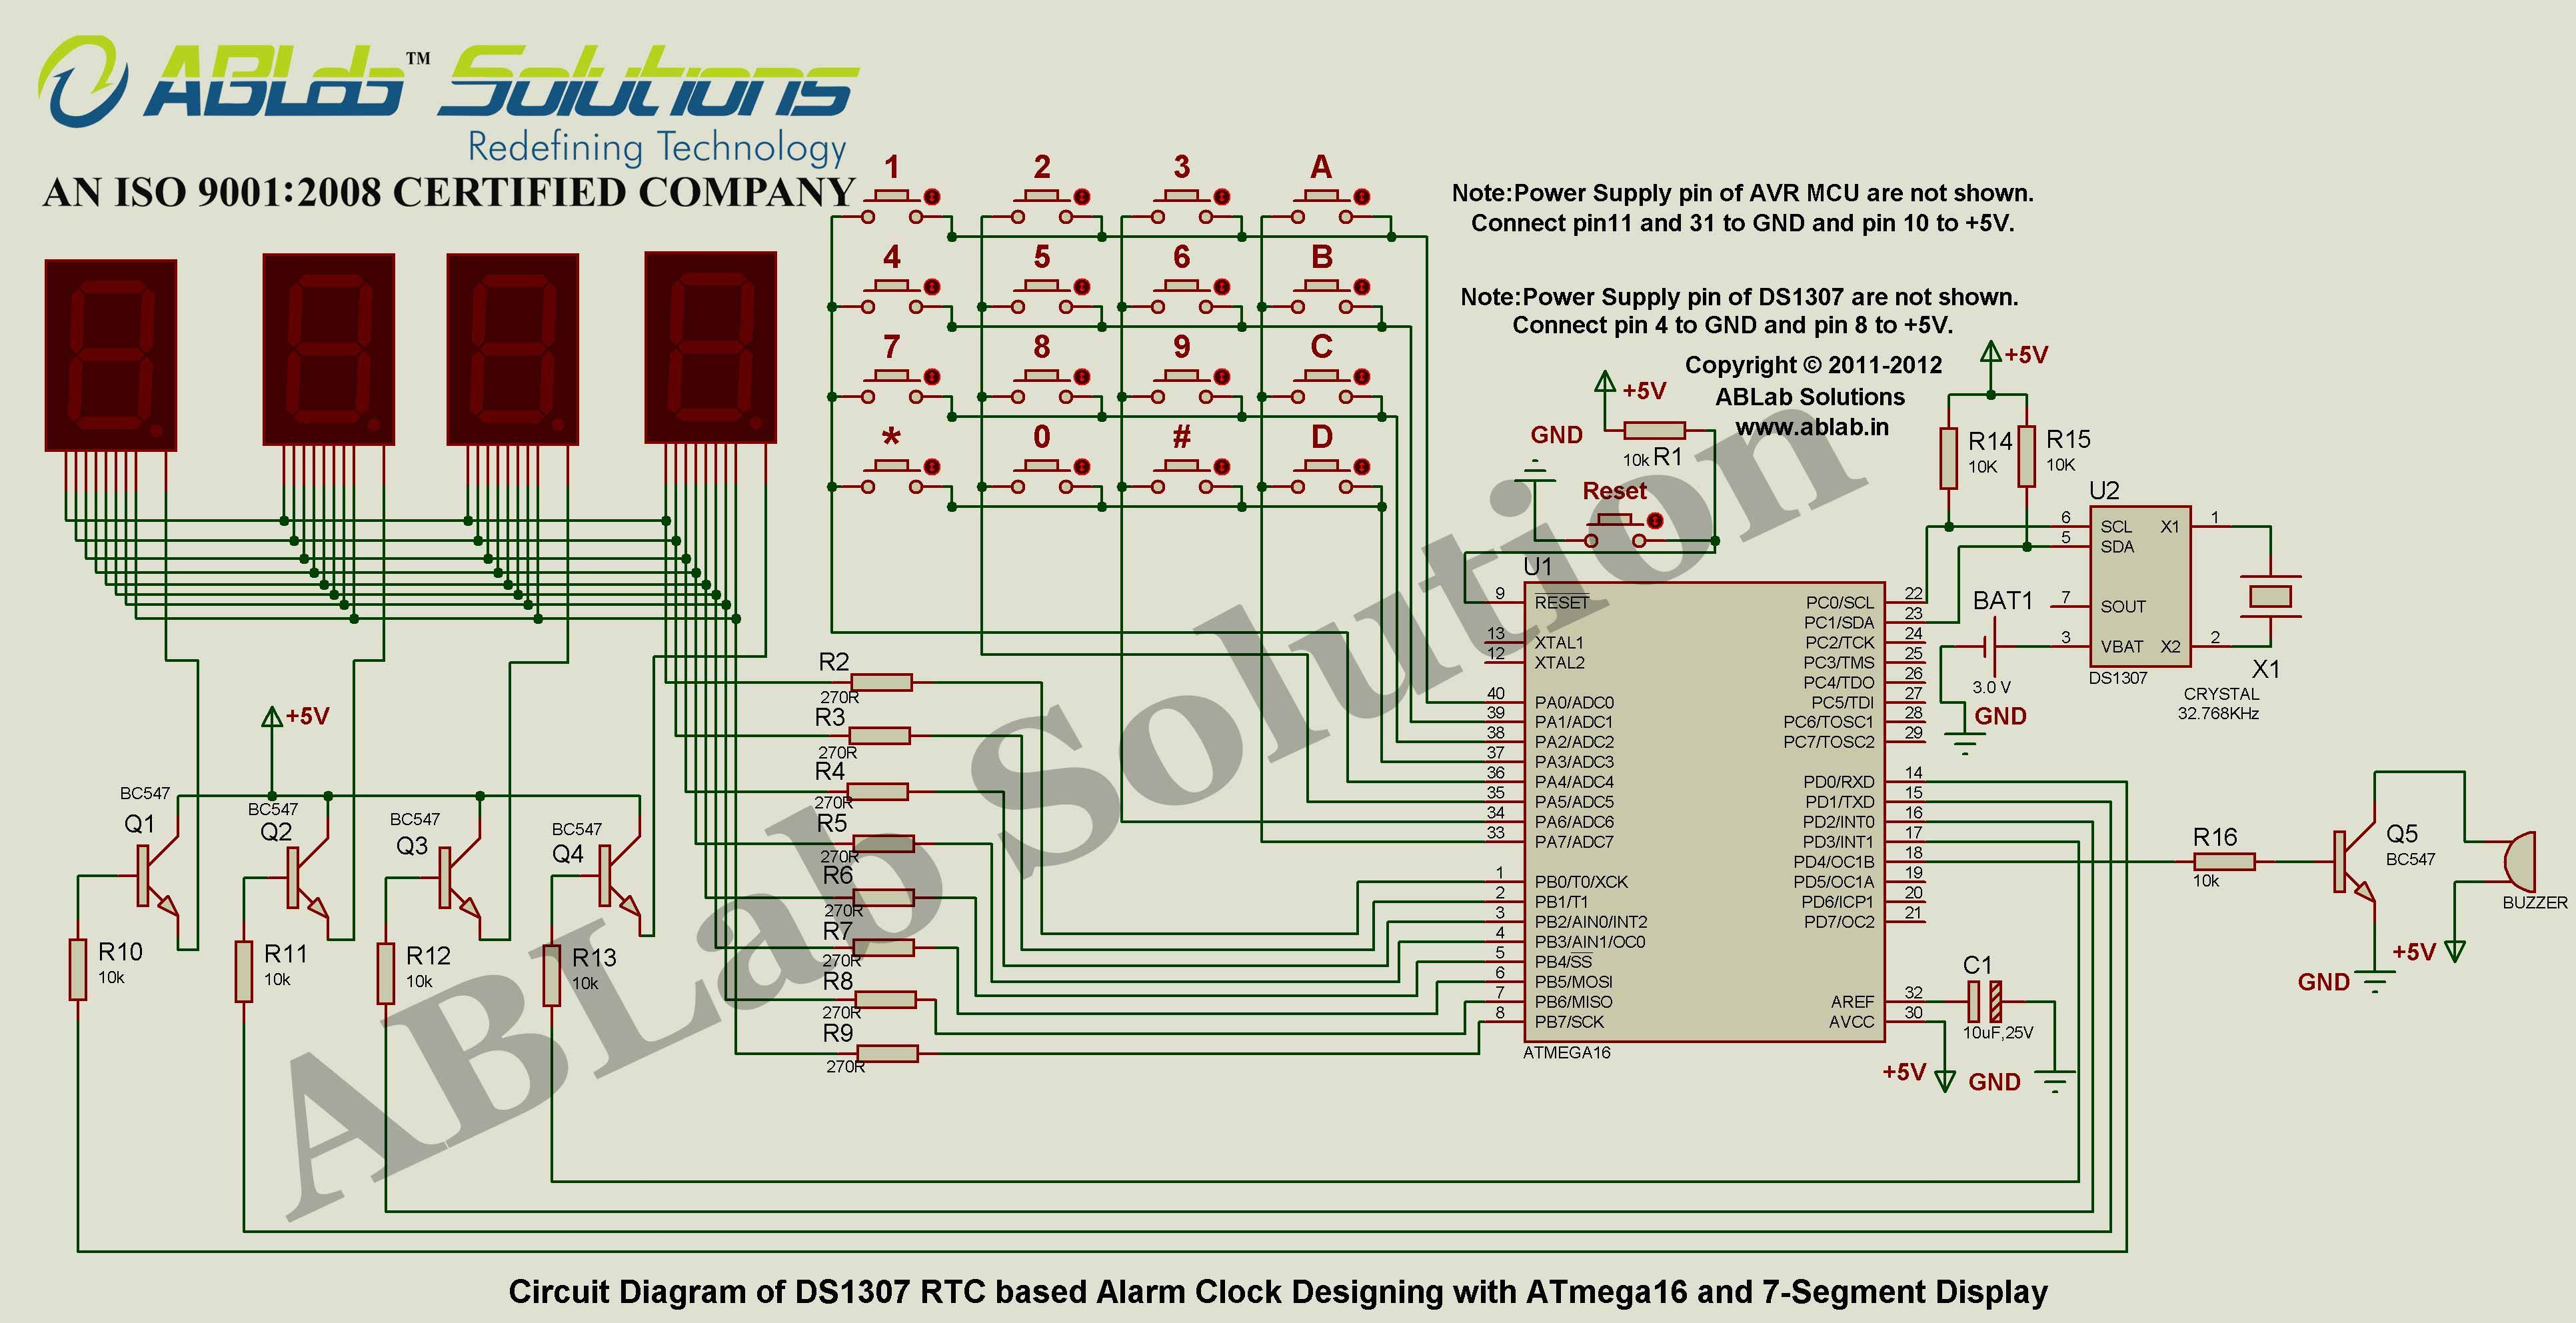 DS1307-RTC-based-Alarm-Clock-Designing-with-AVR ATmega16  Microcontroller-and-7-Segment-Display Circuit Diagram ABLab Solutions